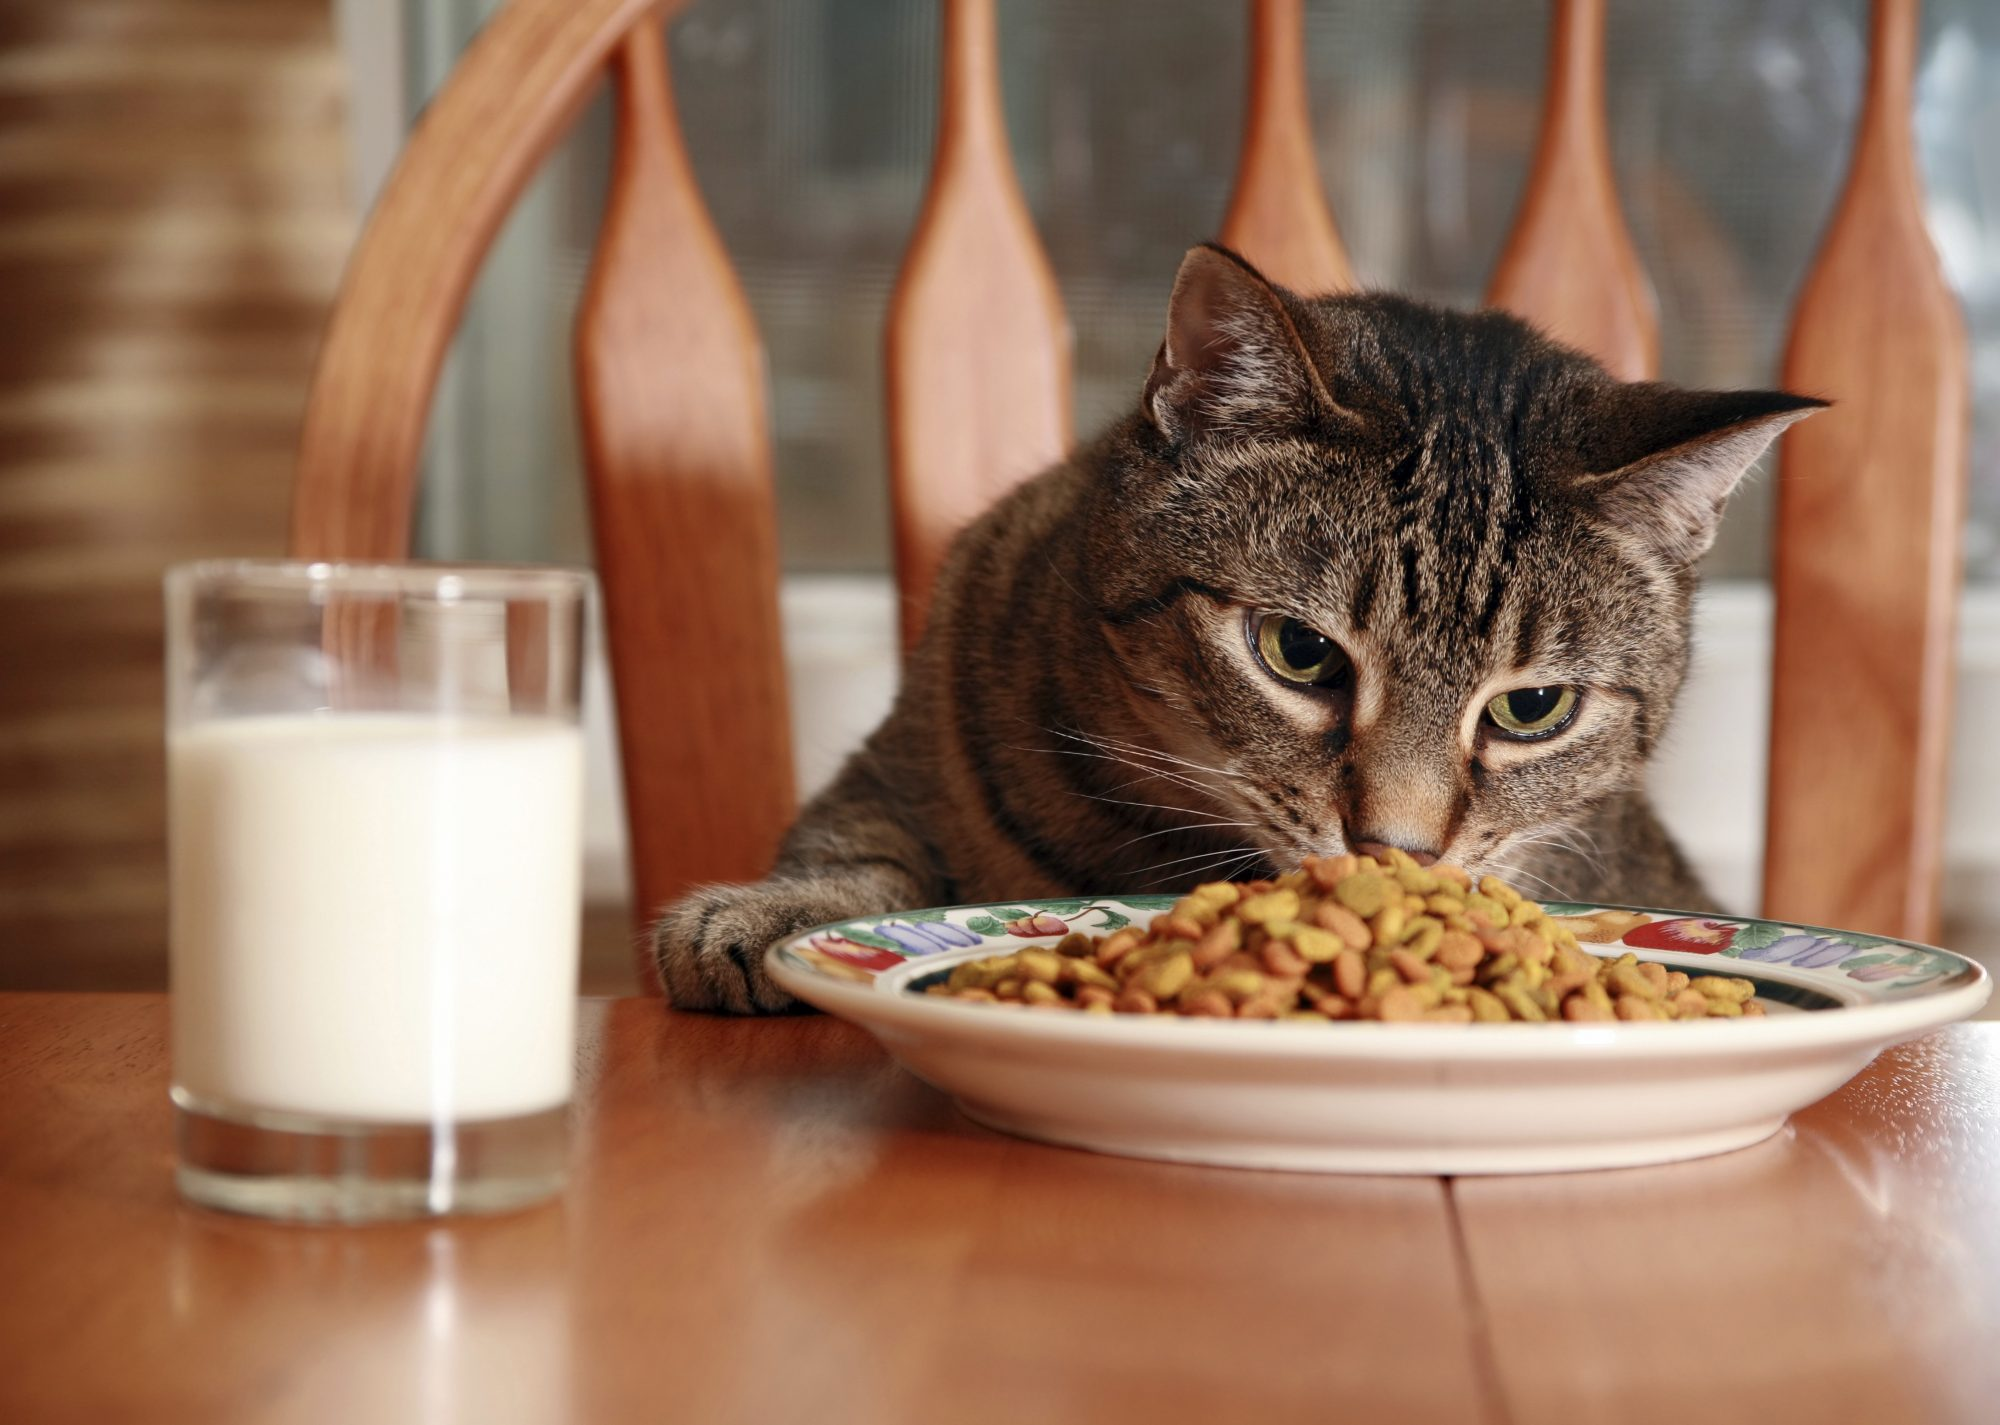 Cat Eating from Table